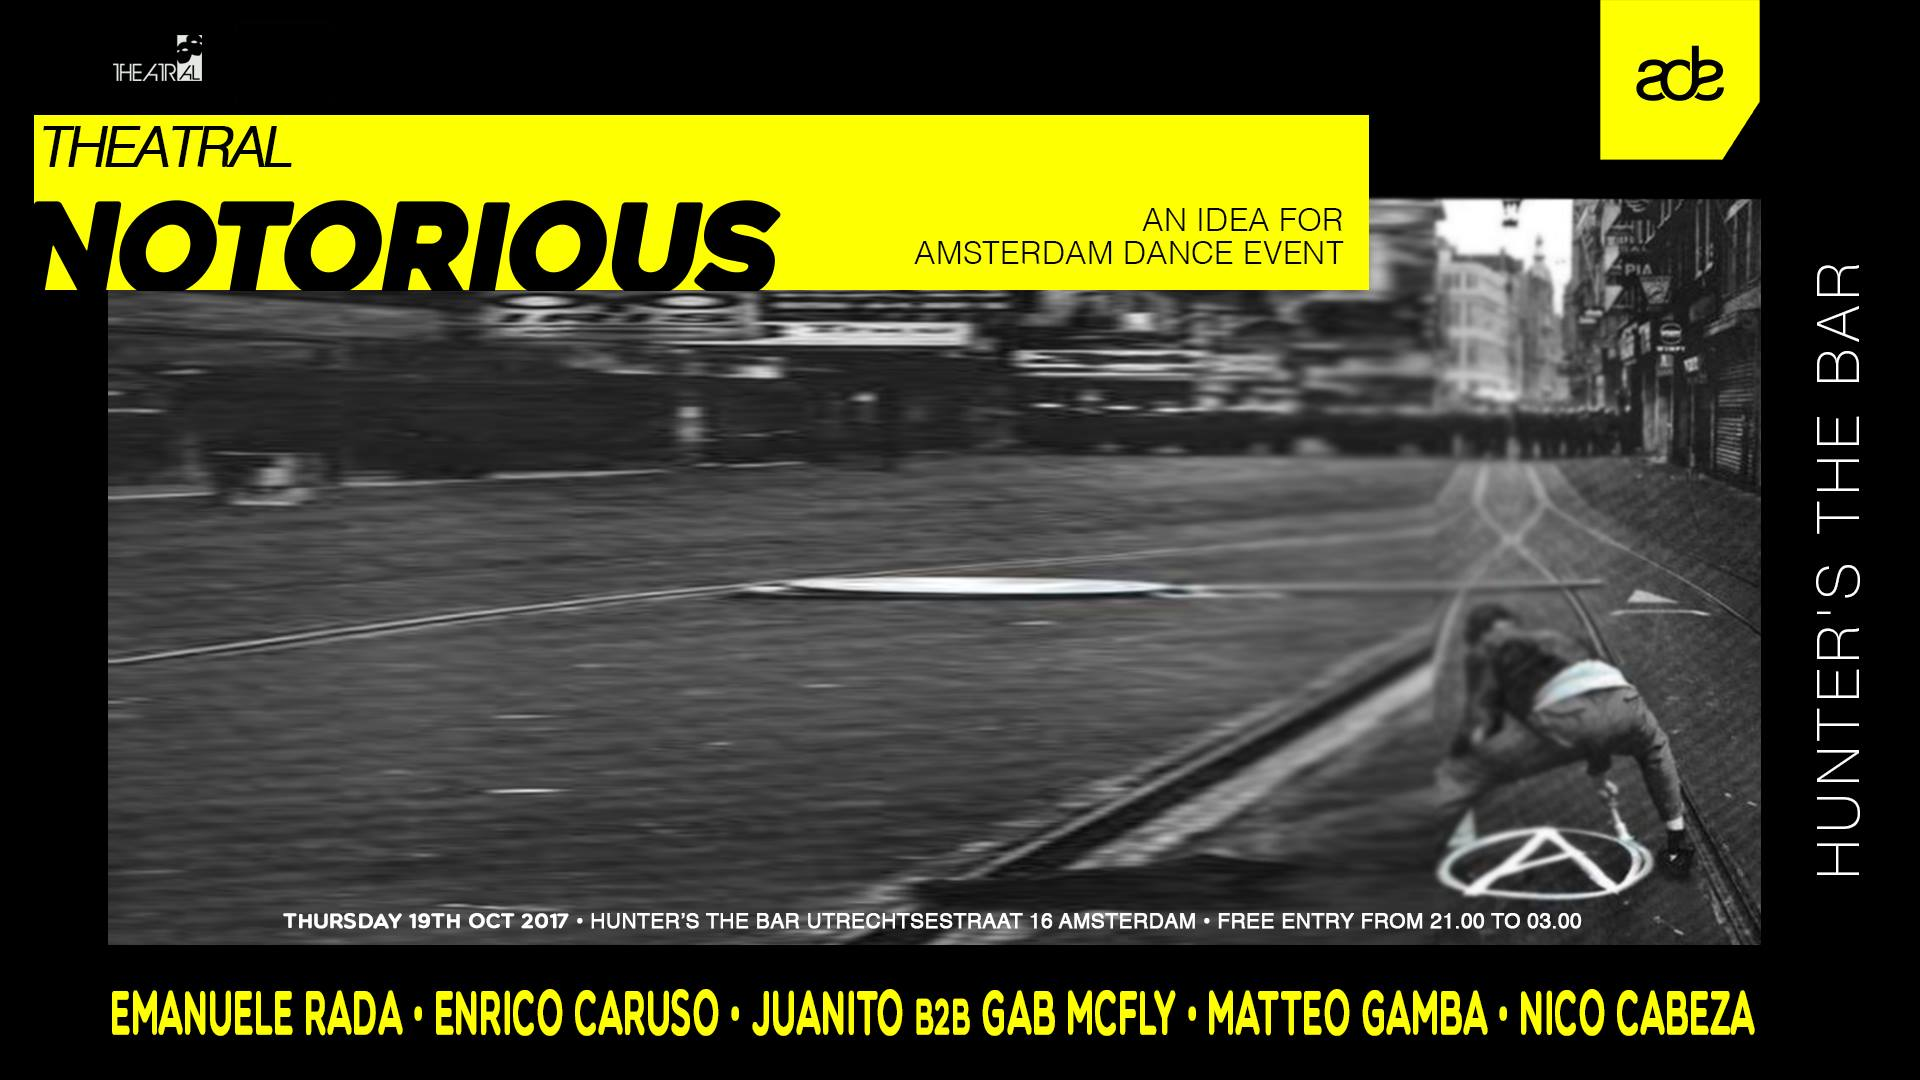 Theatral presents Notorious at ADE 2017